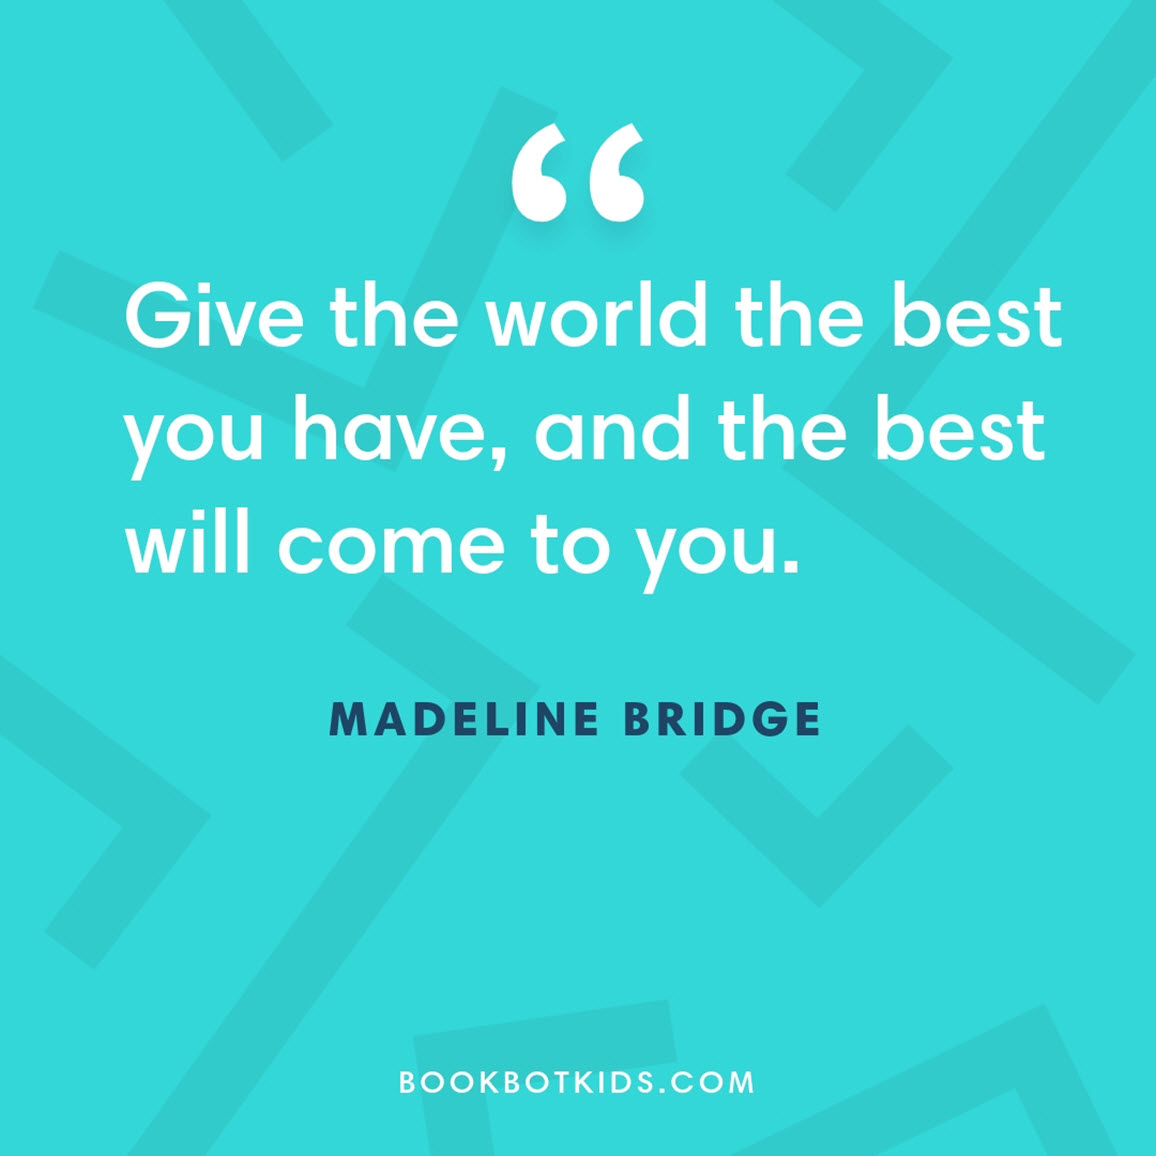 Give the world the best you have, and the best will come to you. – Madeline Bridge